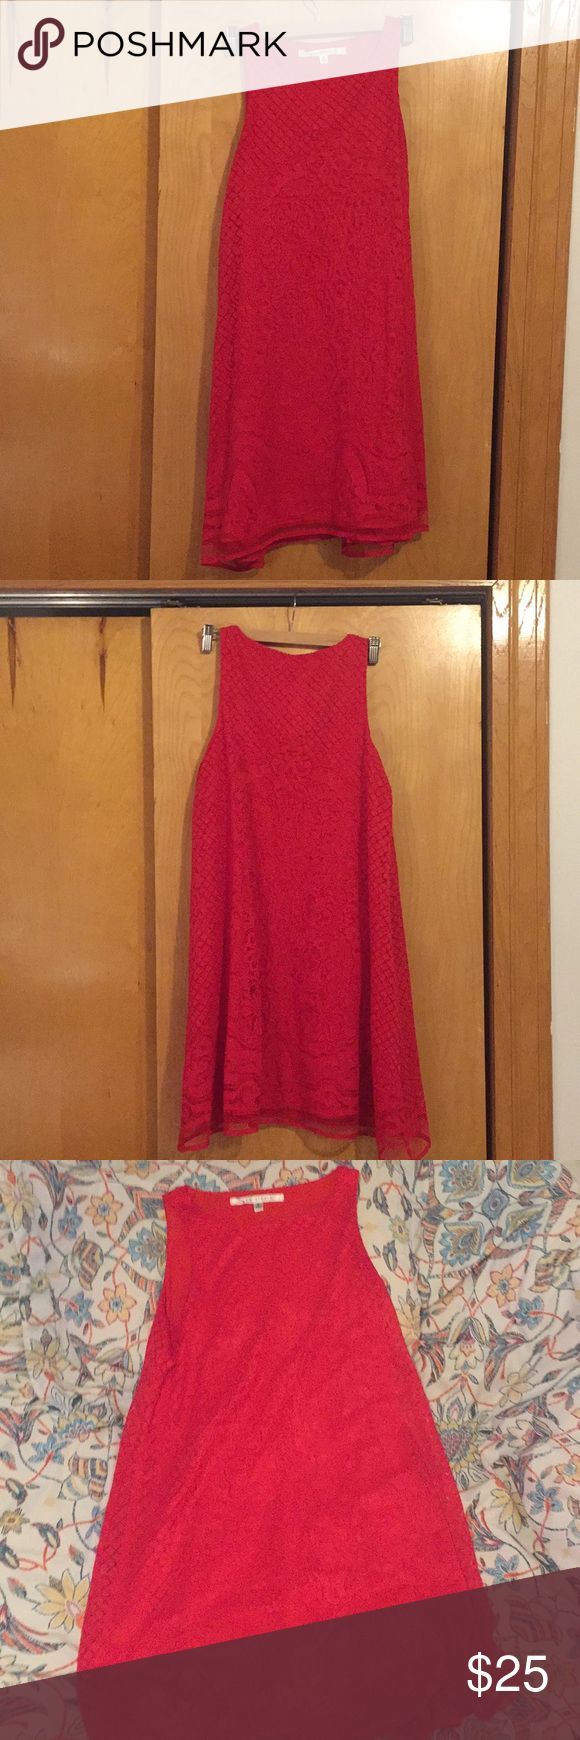 """Bright red Max Studio dress Beautiful cherry red Max Studio dress in small. Lace overlay. Only worn once for graduation pictures, hits me about mid-thigh at 5'7"""". Max Studio Dresses Mini"""